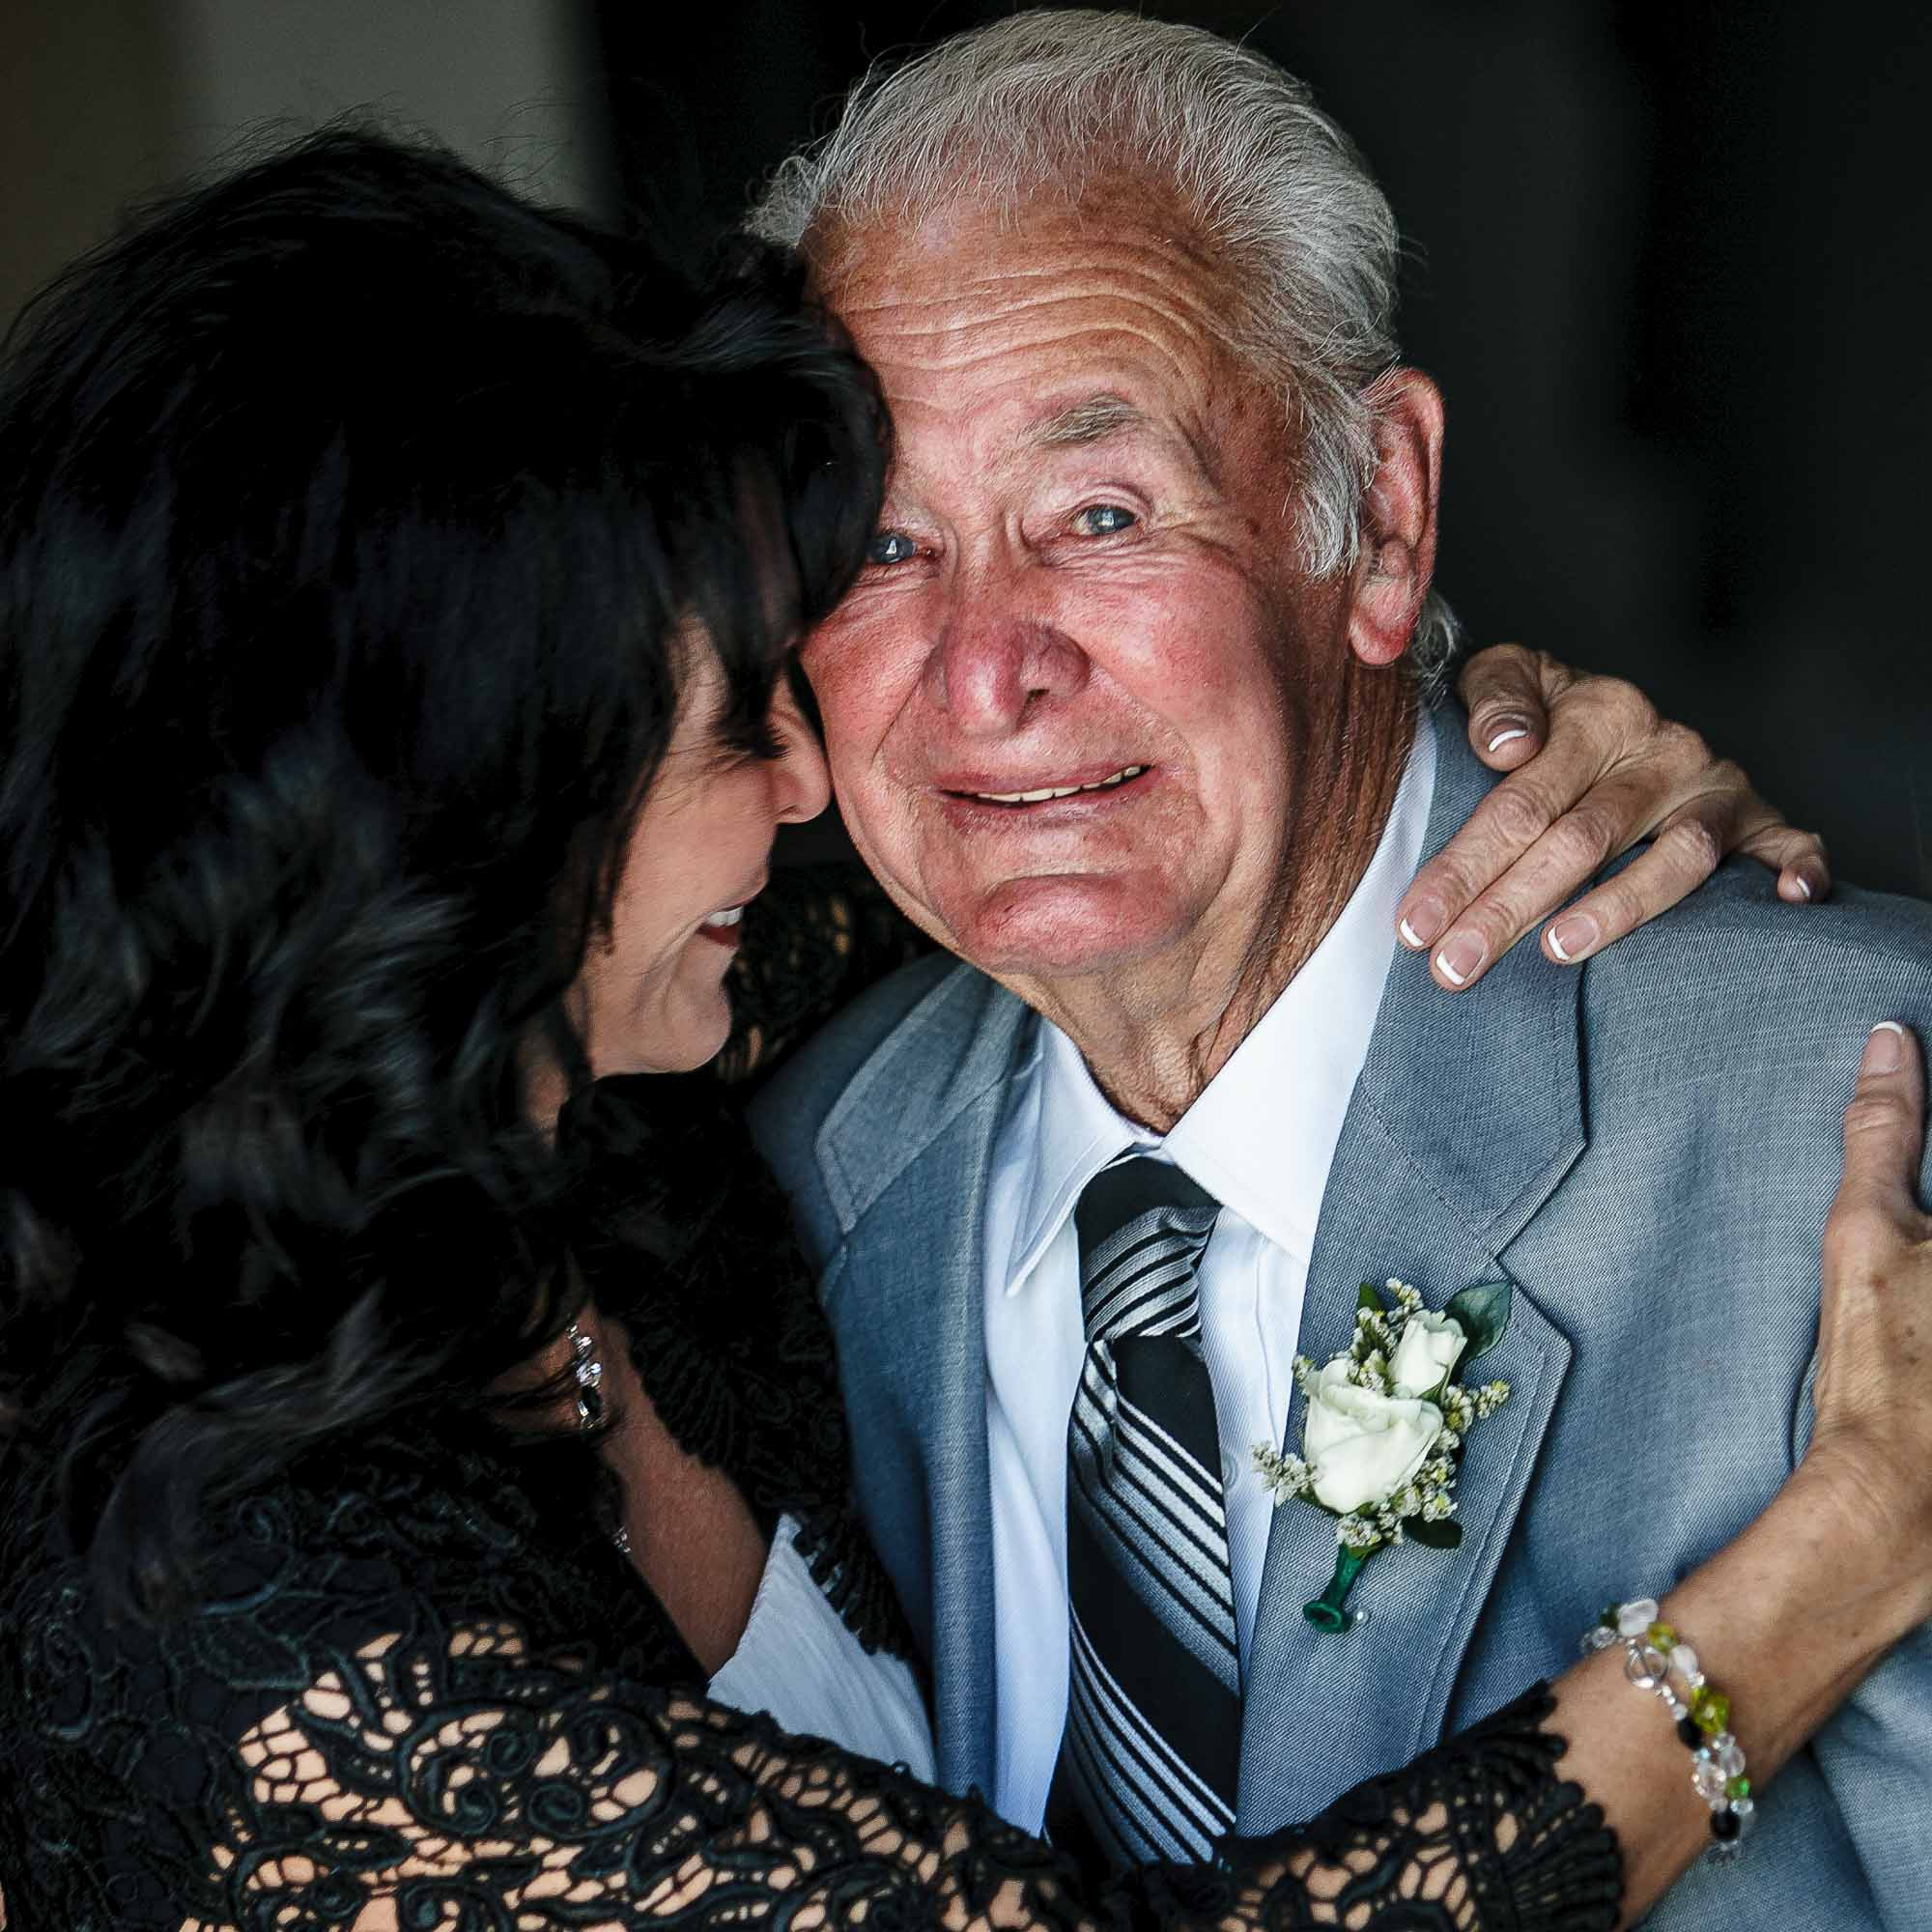 emotional photo of grandfather with bride before entering ceremony